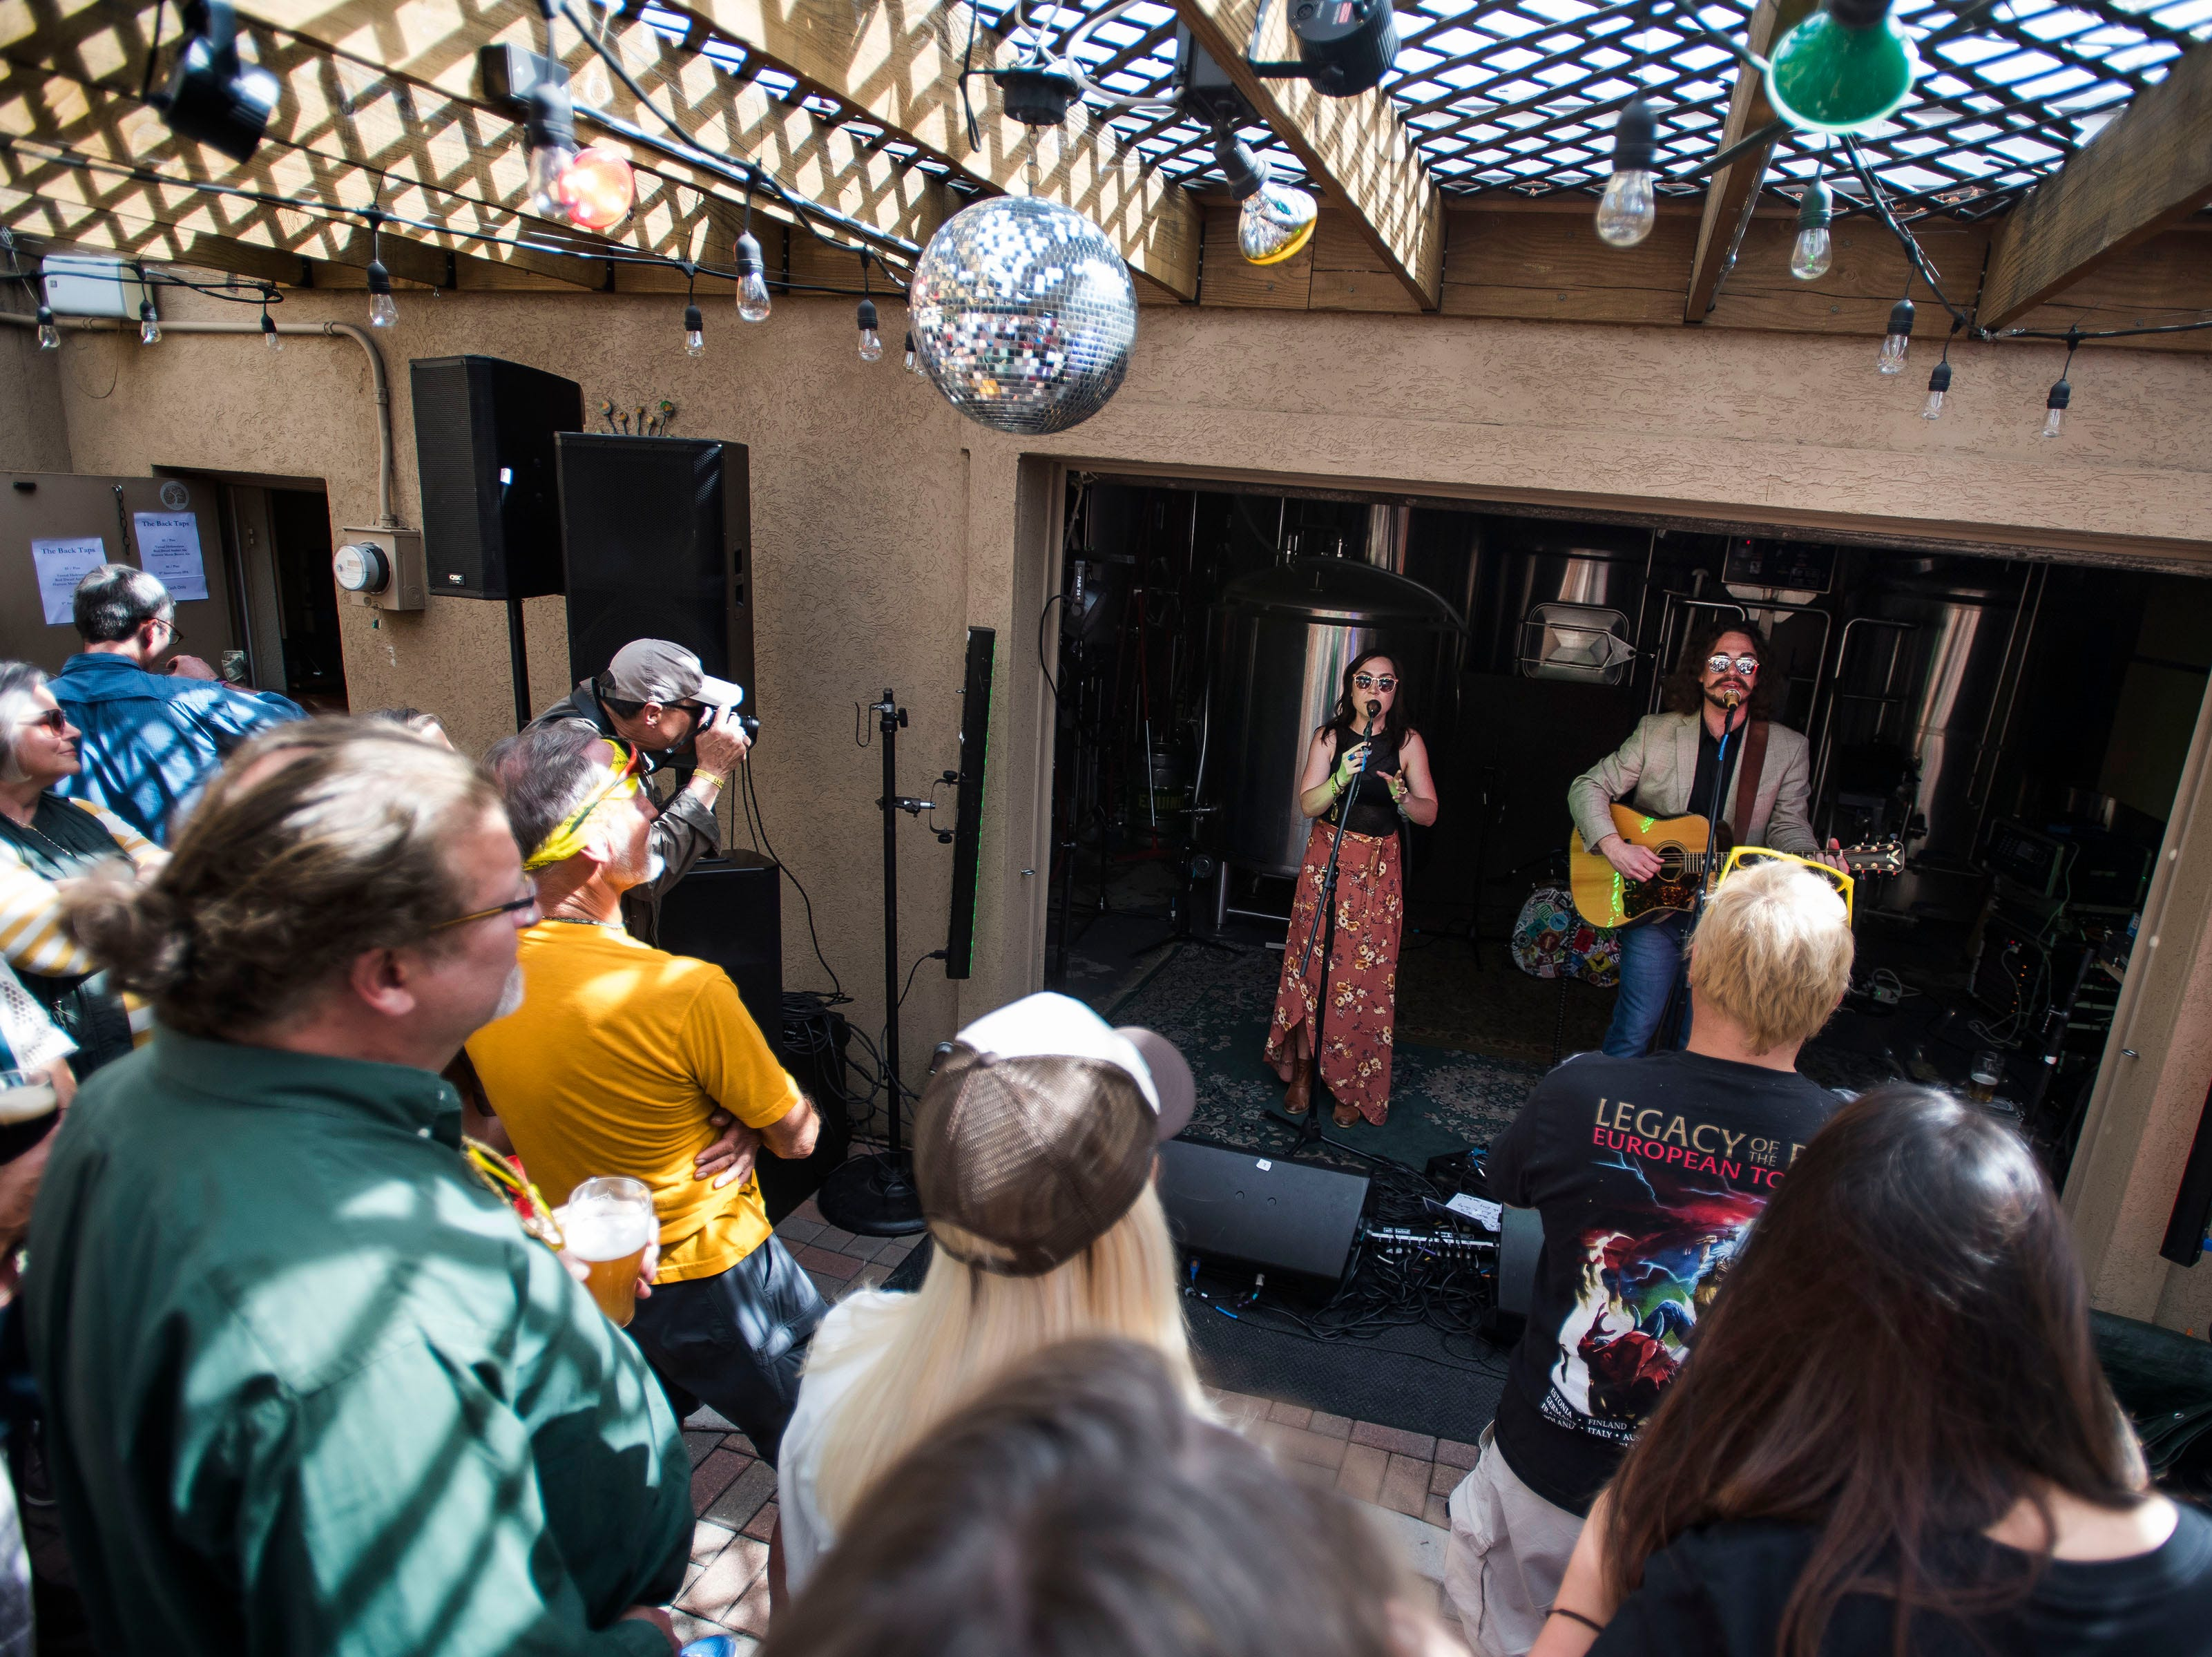 Michael Kirkpartick performs at the Equinox Brewing back patio during the FoCoMX XI music festival on Friday, April 26, 2019, in Fort Collins, Colo.